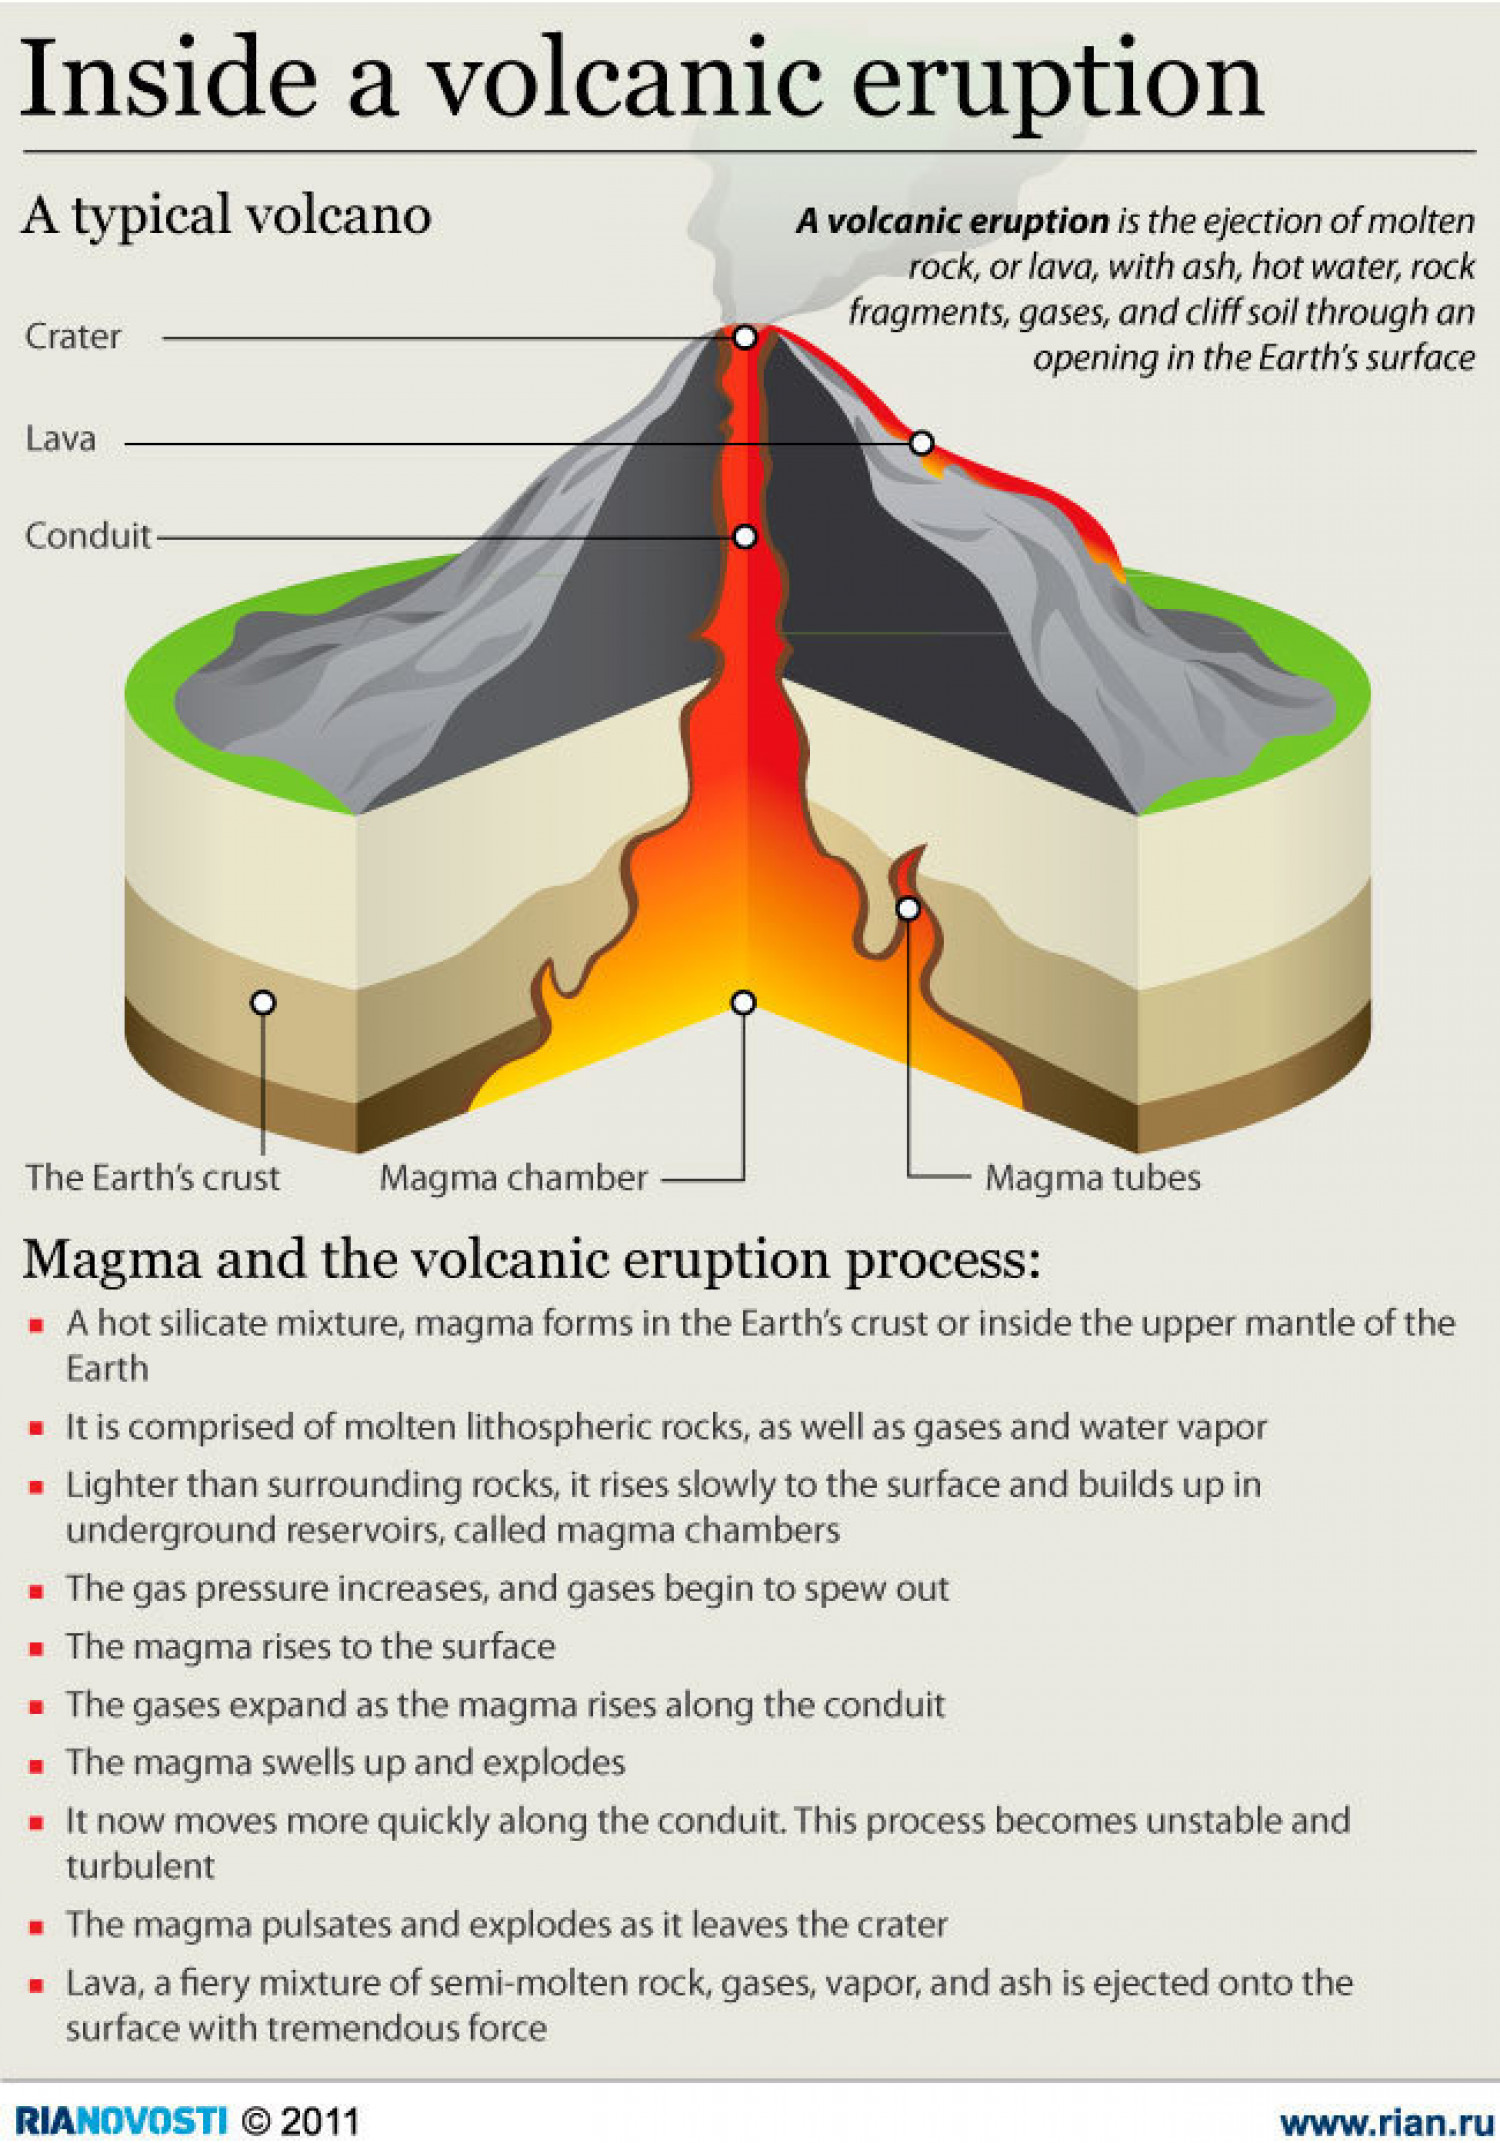 Inside A Volcanic Eruption Infographic